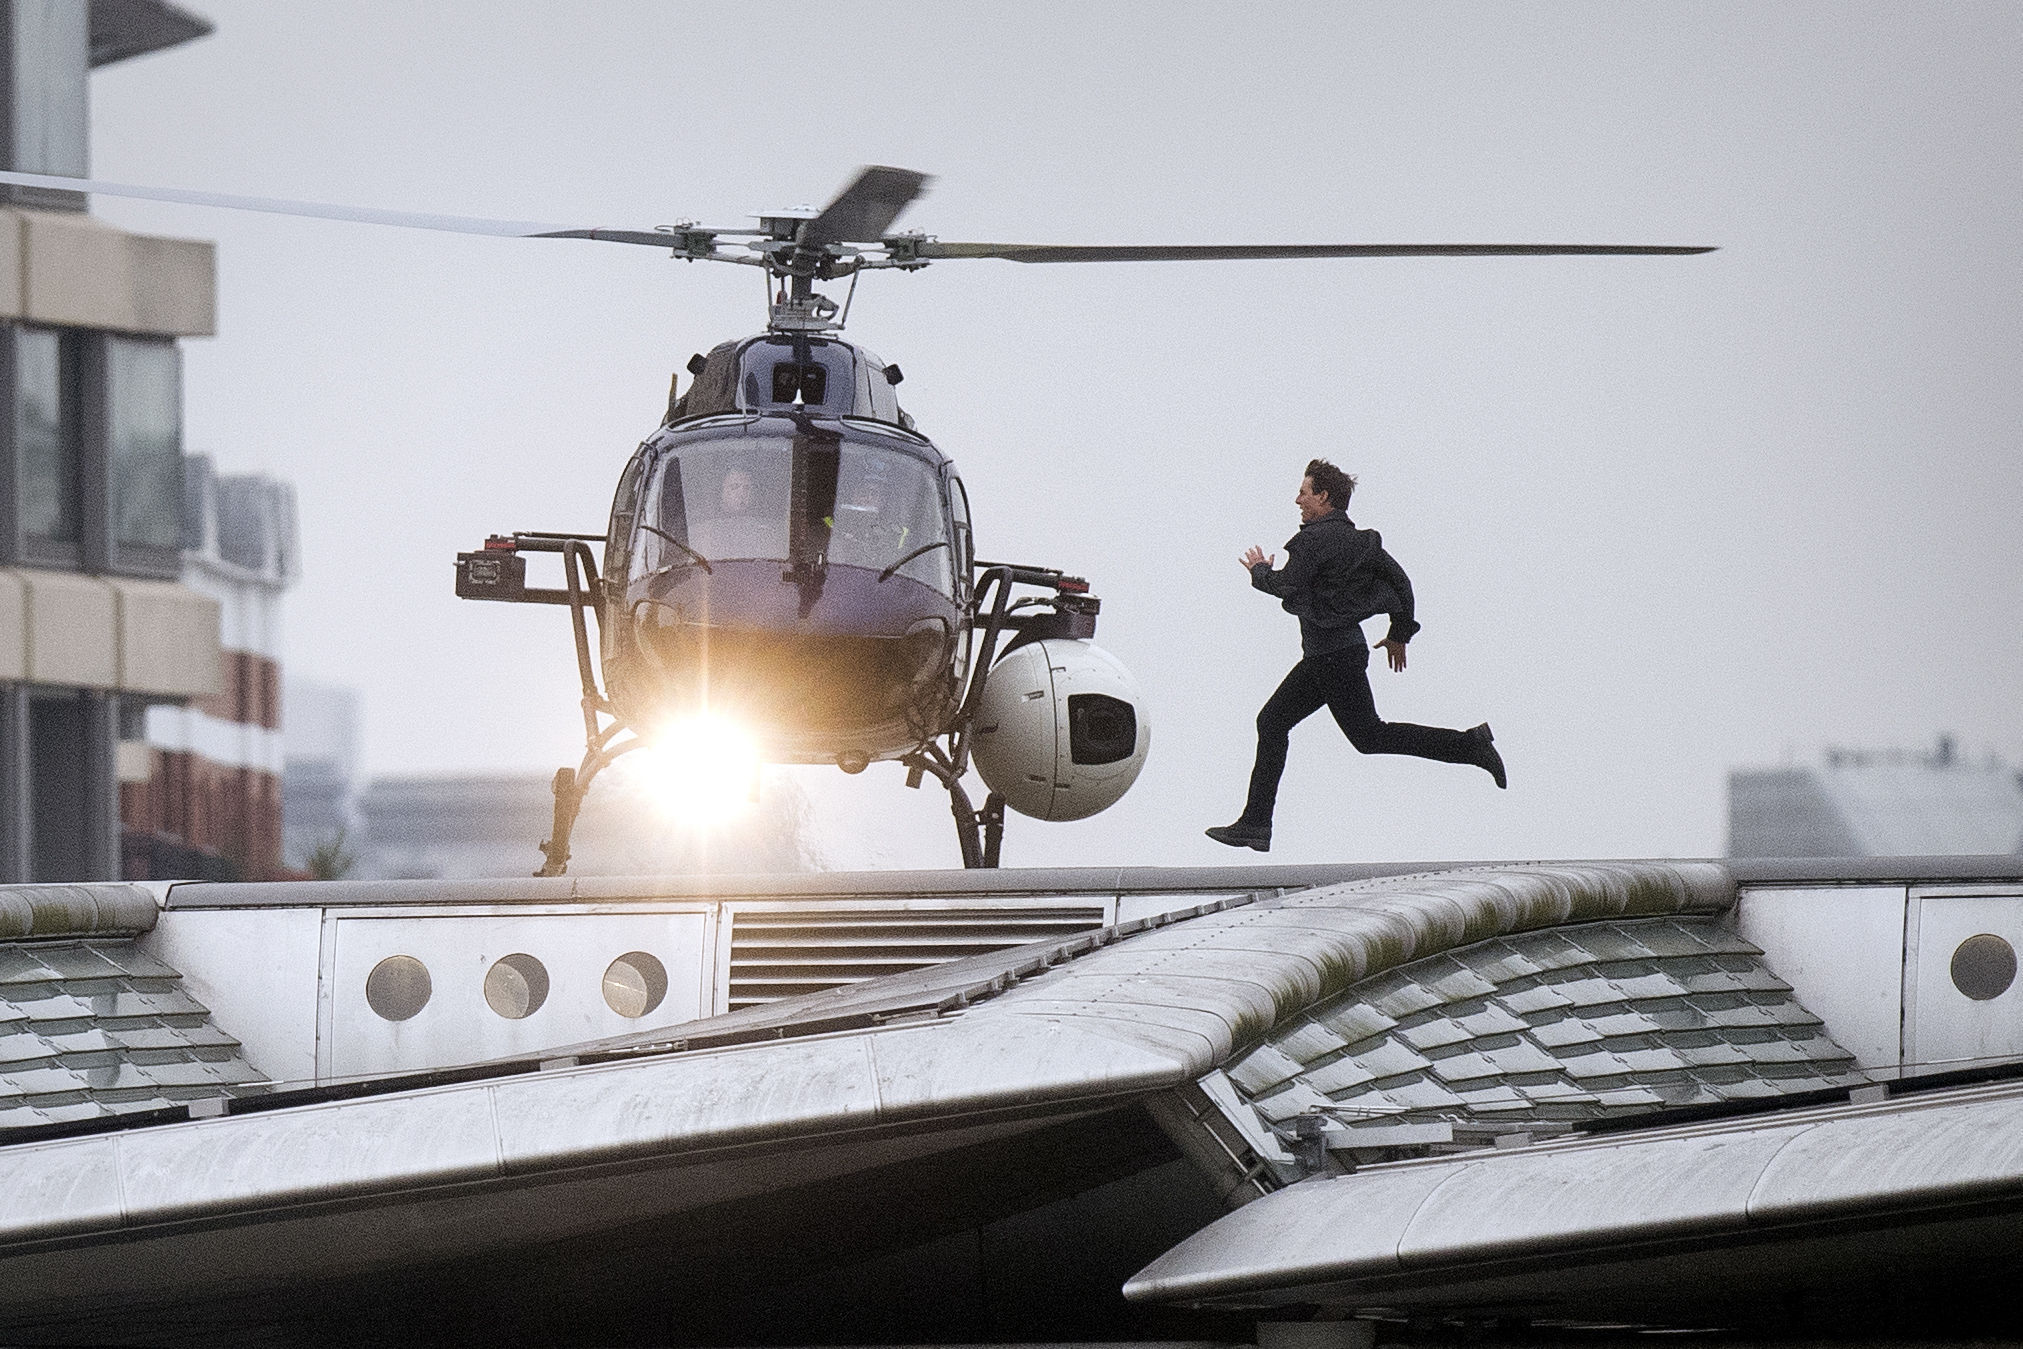 Mission: Impossible 6, title and new pics